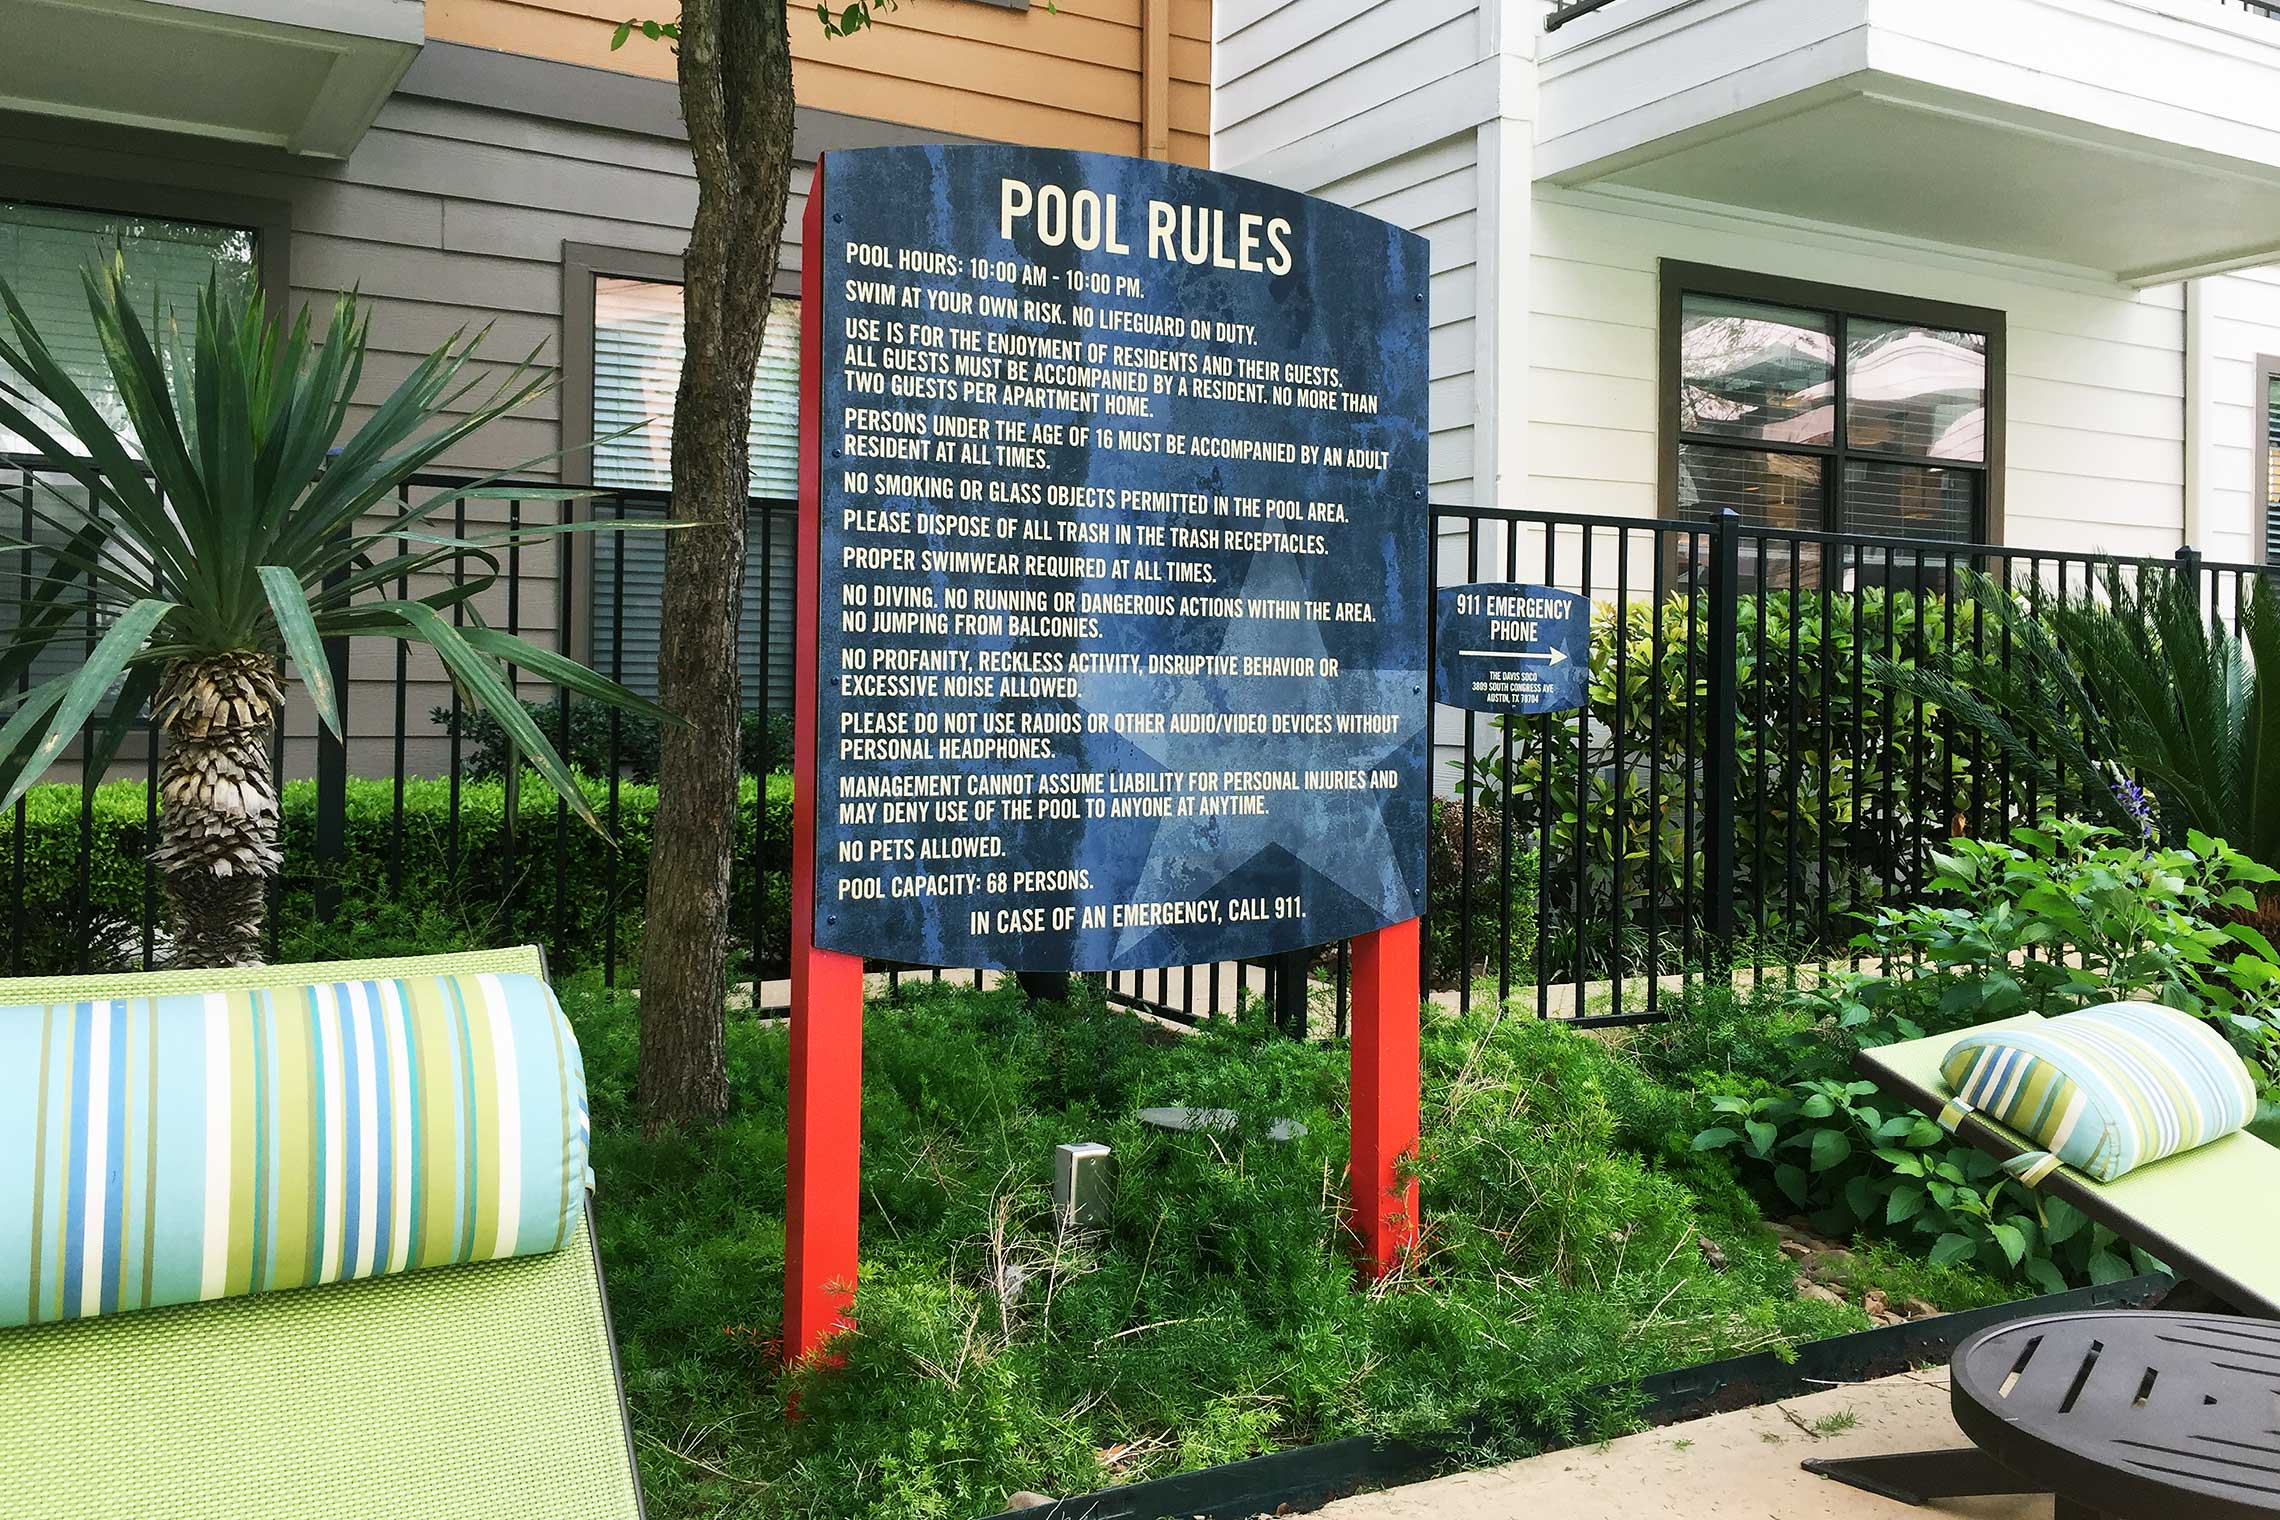 The Davis Soco Apartments Pool Rules Sign